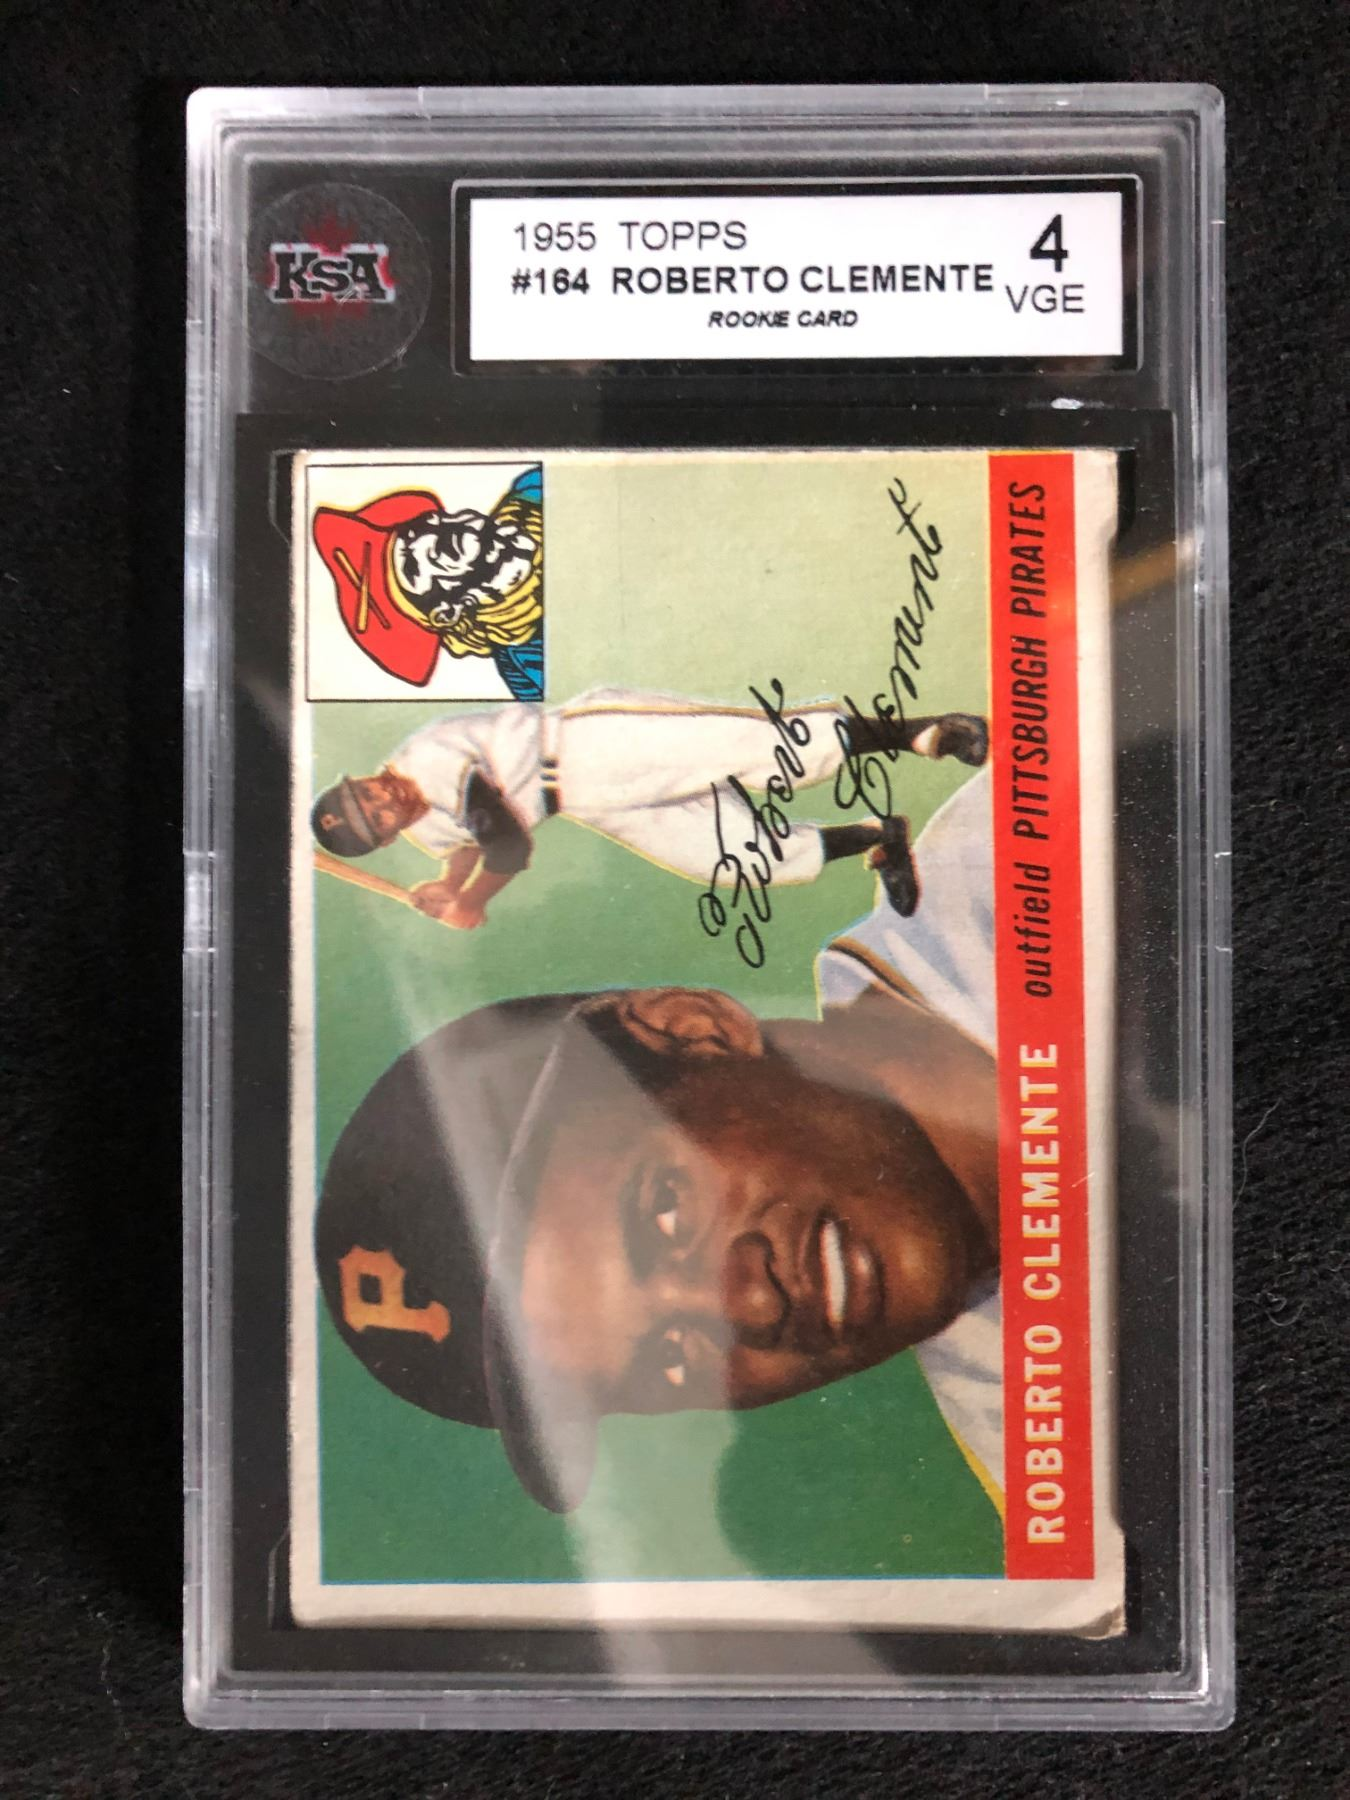 1955 Topps 164 Roberto Clemente Rookie Card 4 Vge